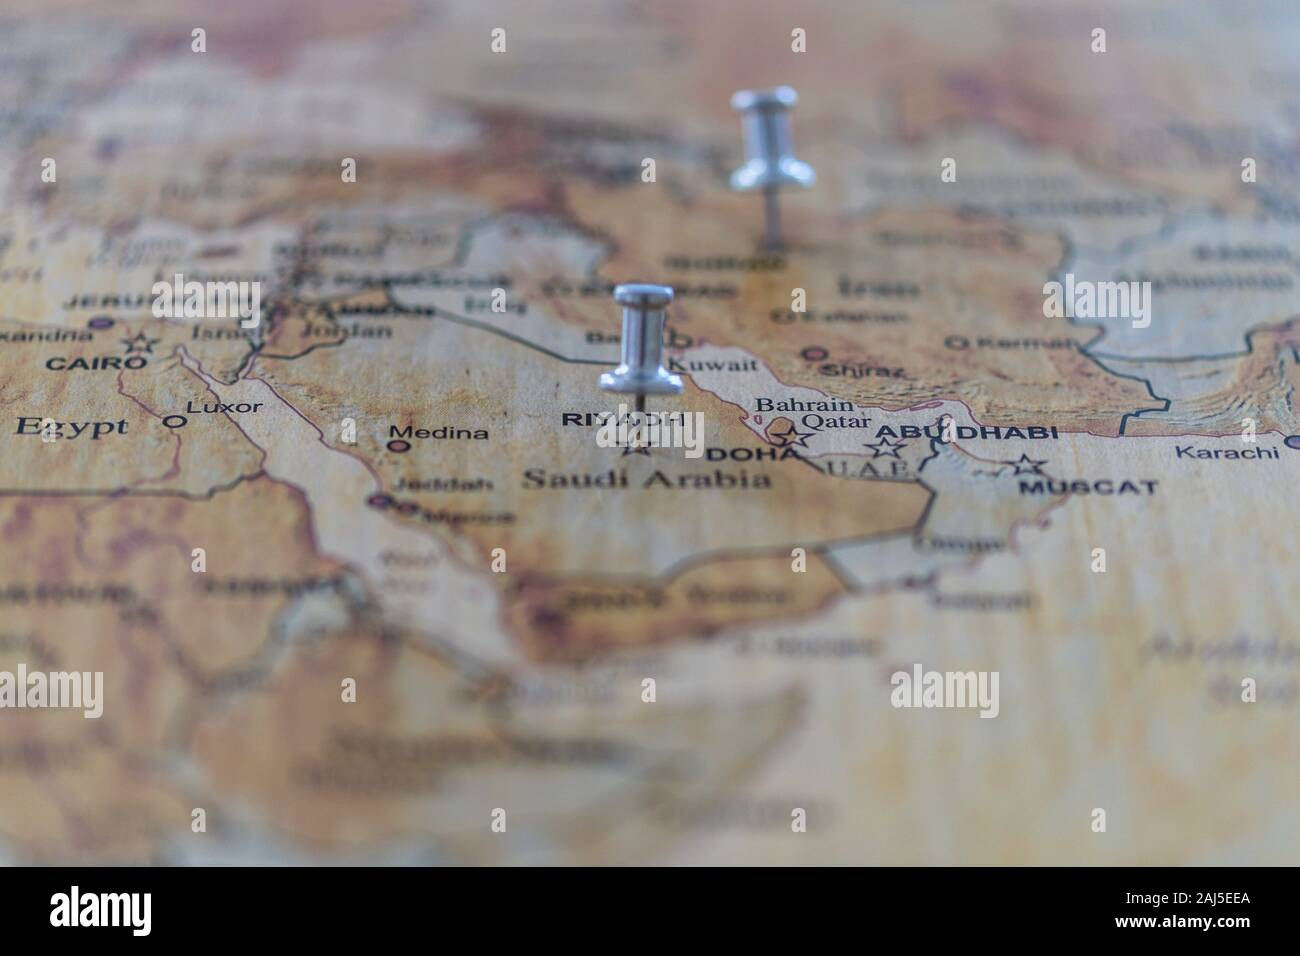 World Map With Map Pins In Some Capital Cities Stock Photo Alamy